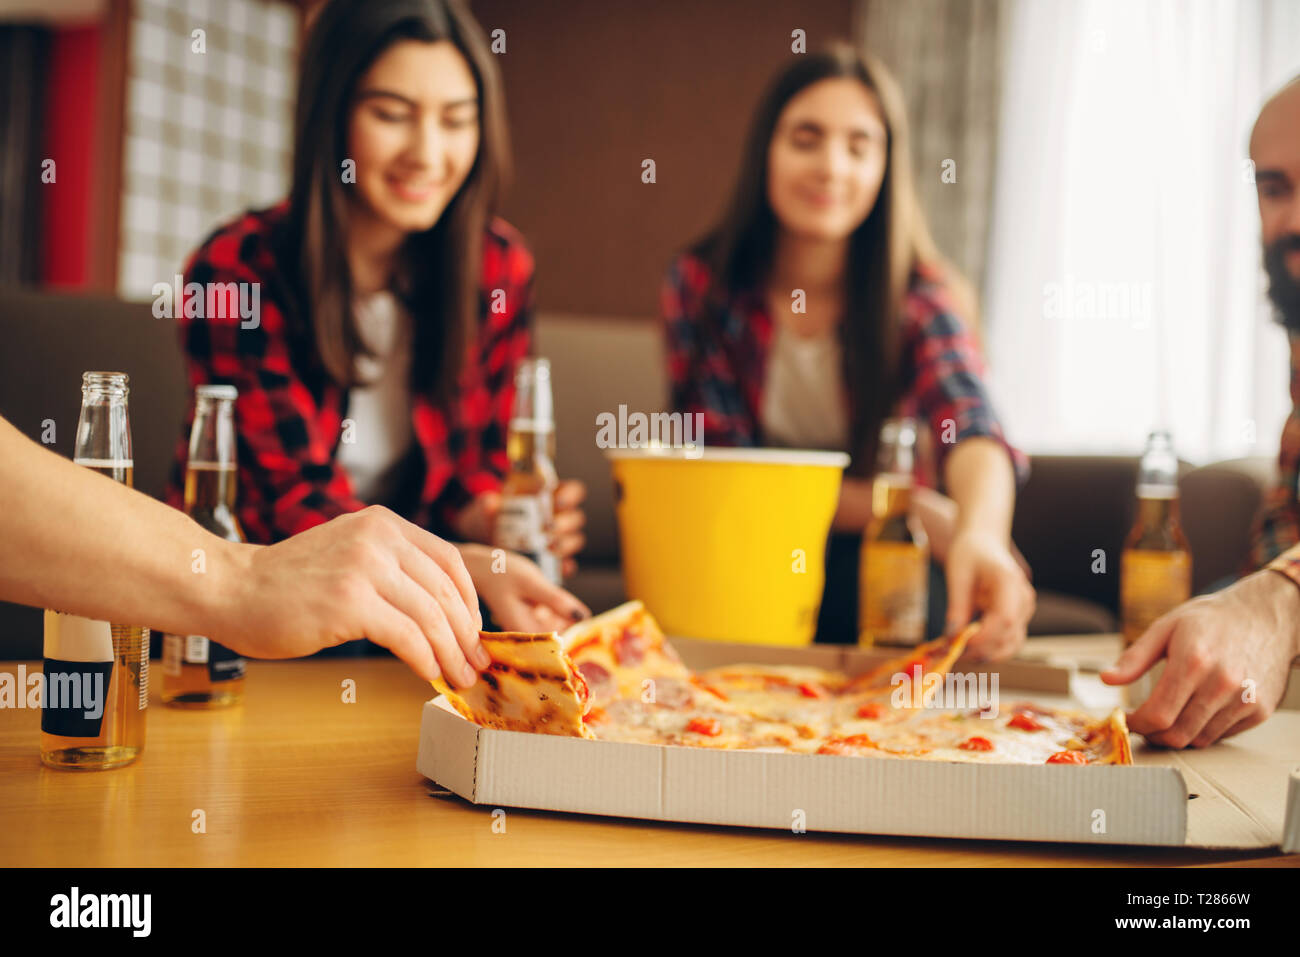 Smiling friends drinks beer with pizza at the house party. Good friendship, group of people leisures together. Cheerful company celebrate the event - Stock Image